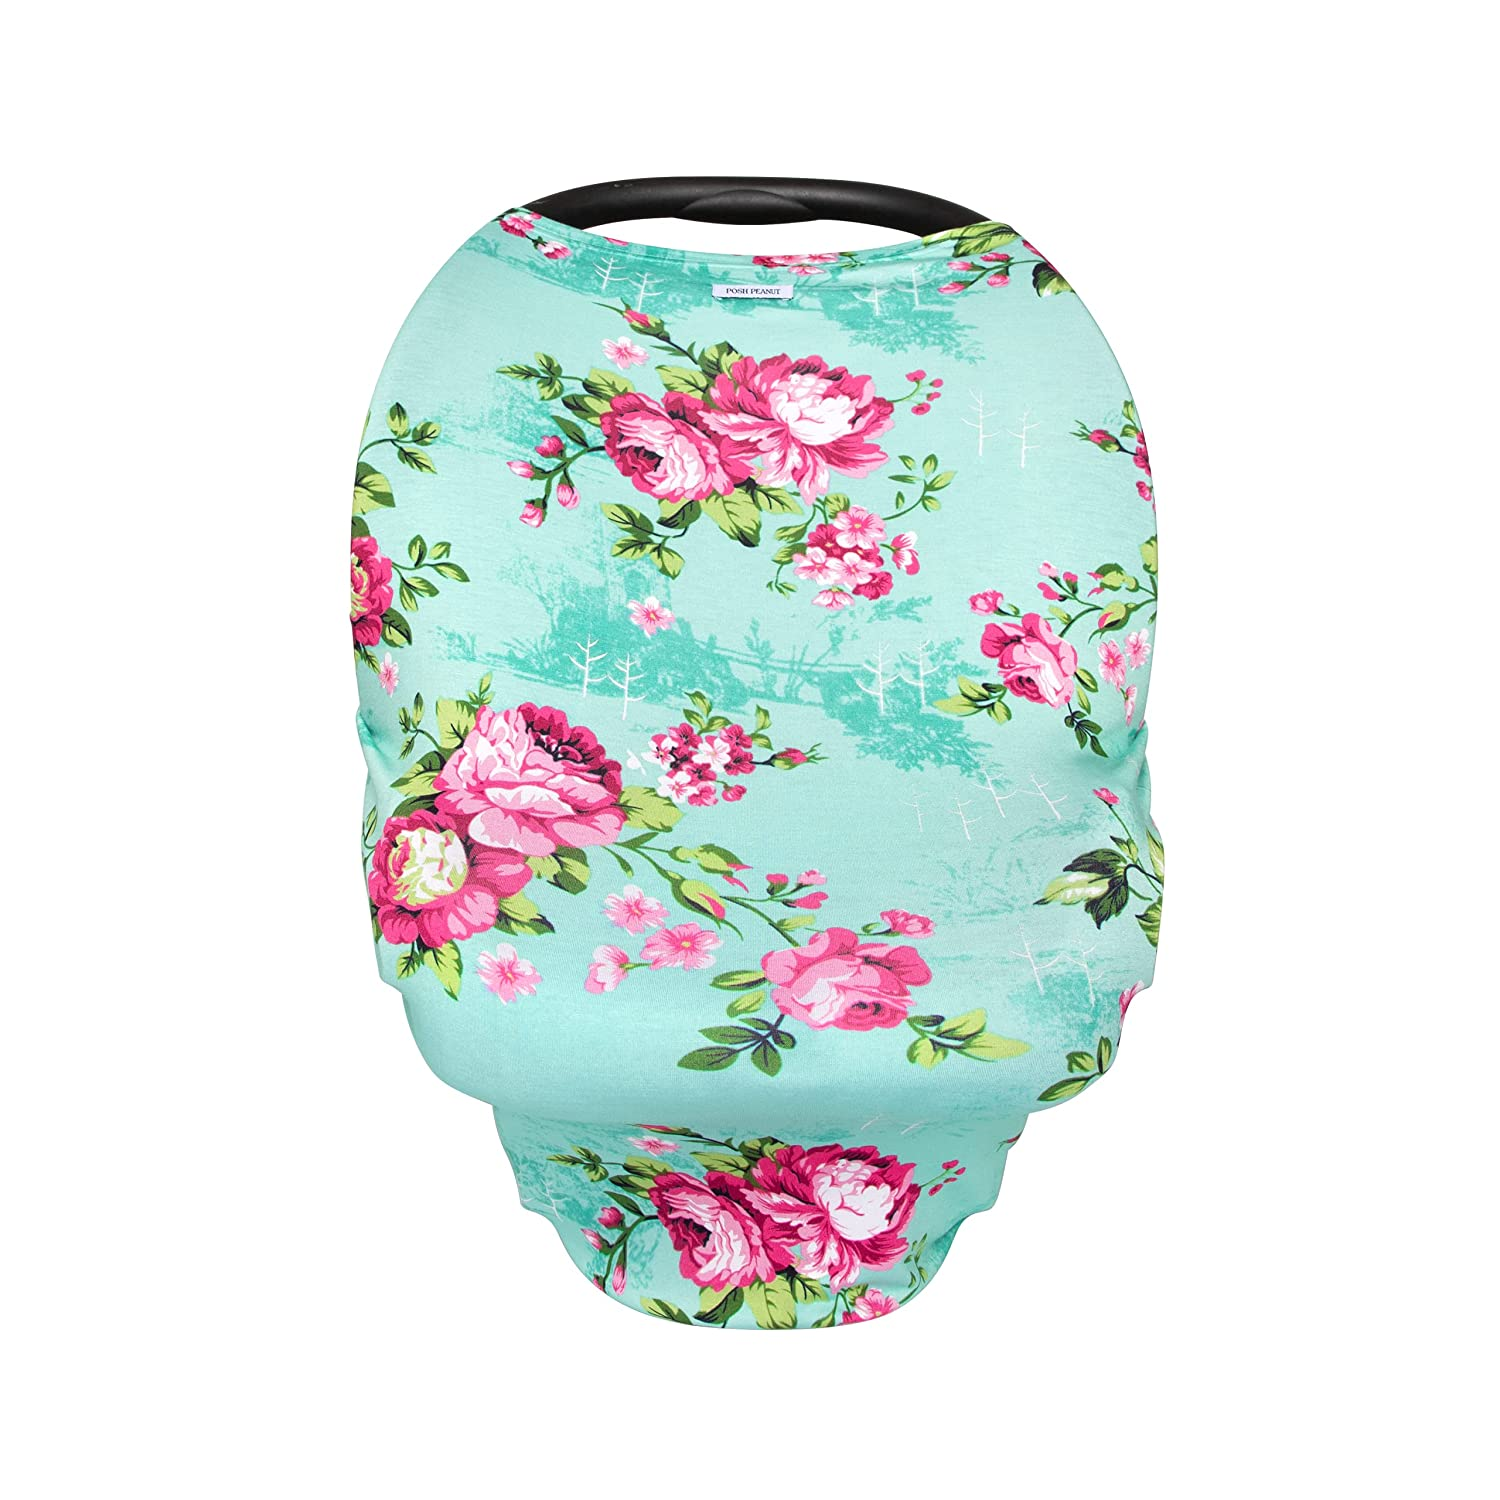 Posh Peanut Baby Car Seat Cover - Premium Knit Nursing Cover - Stretchy and Soft Viscose from Bamboo - Aqua Floral